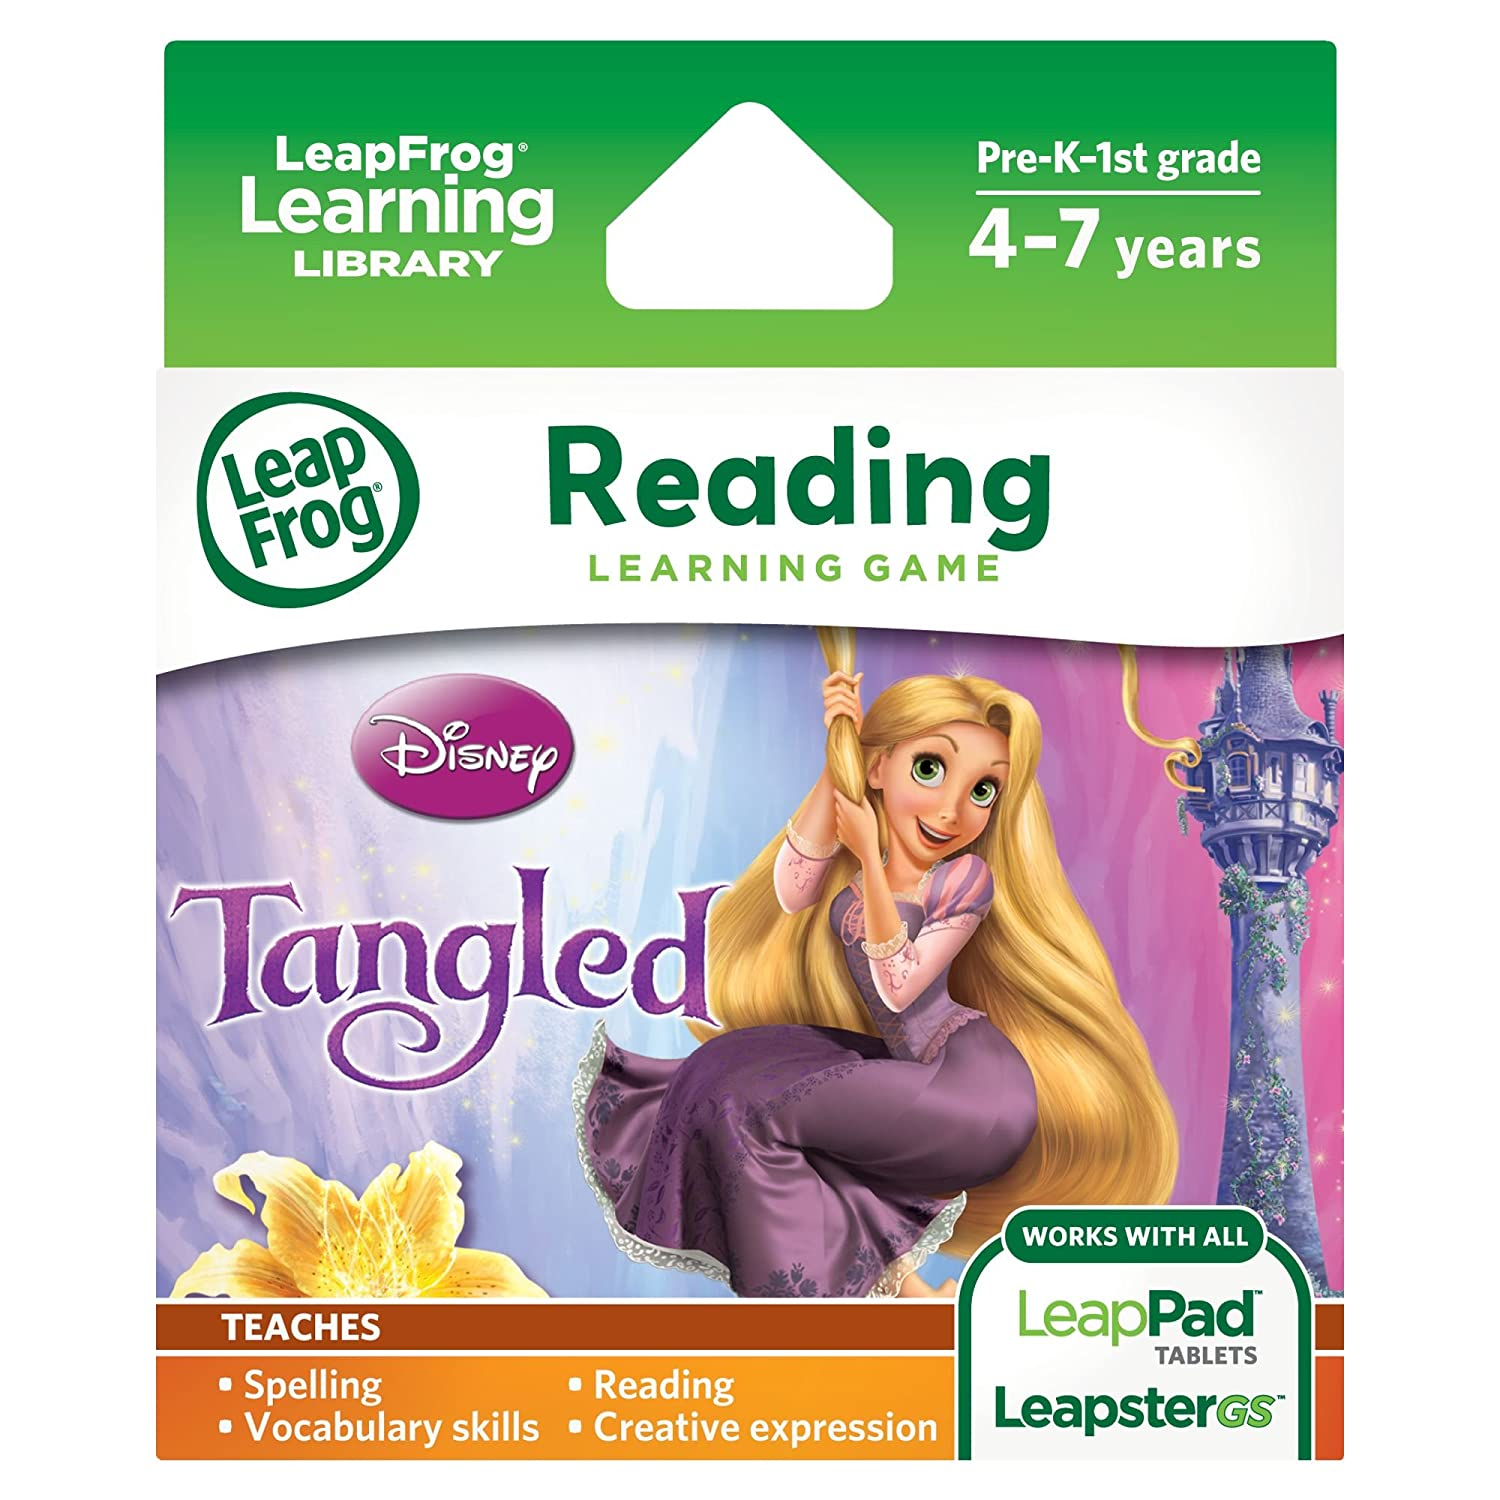 Amazon: Leapfrog Disney: Tangled Learning Game (for Leappad Tablets And  Leapstergs): Toys & Games